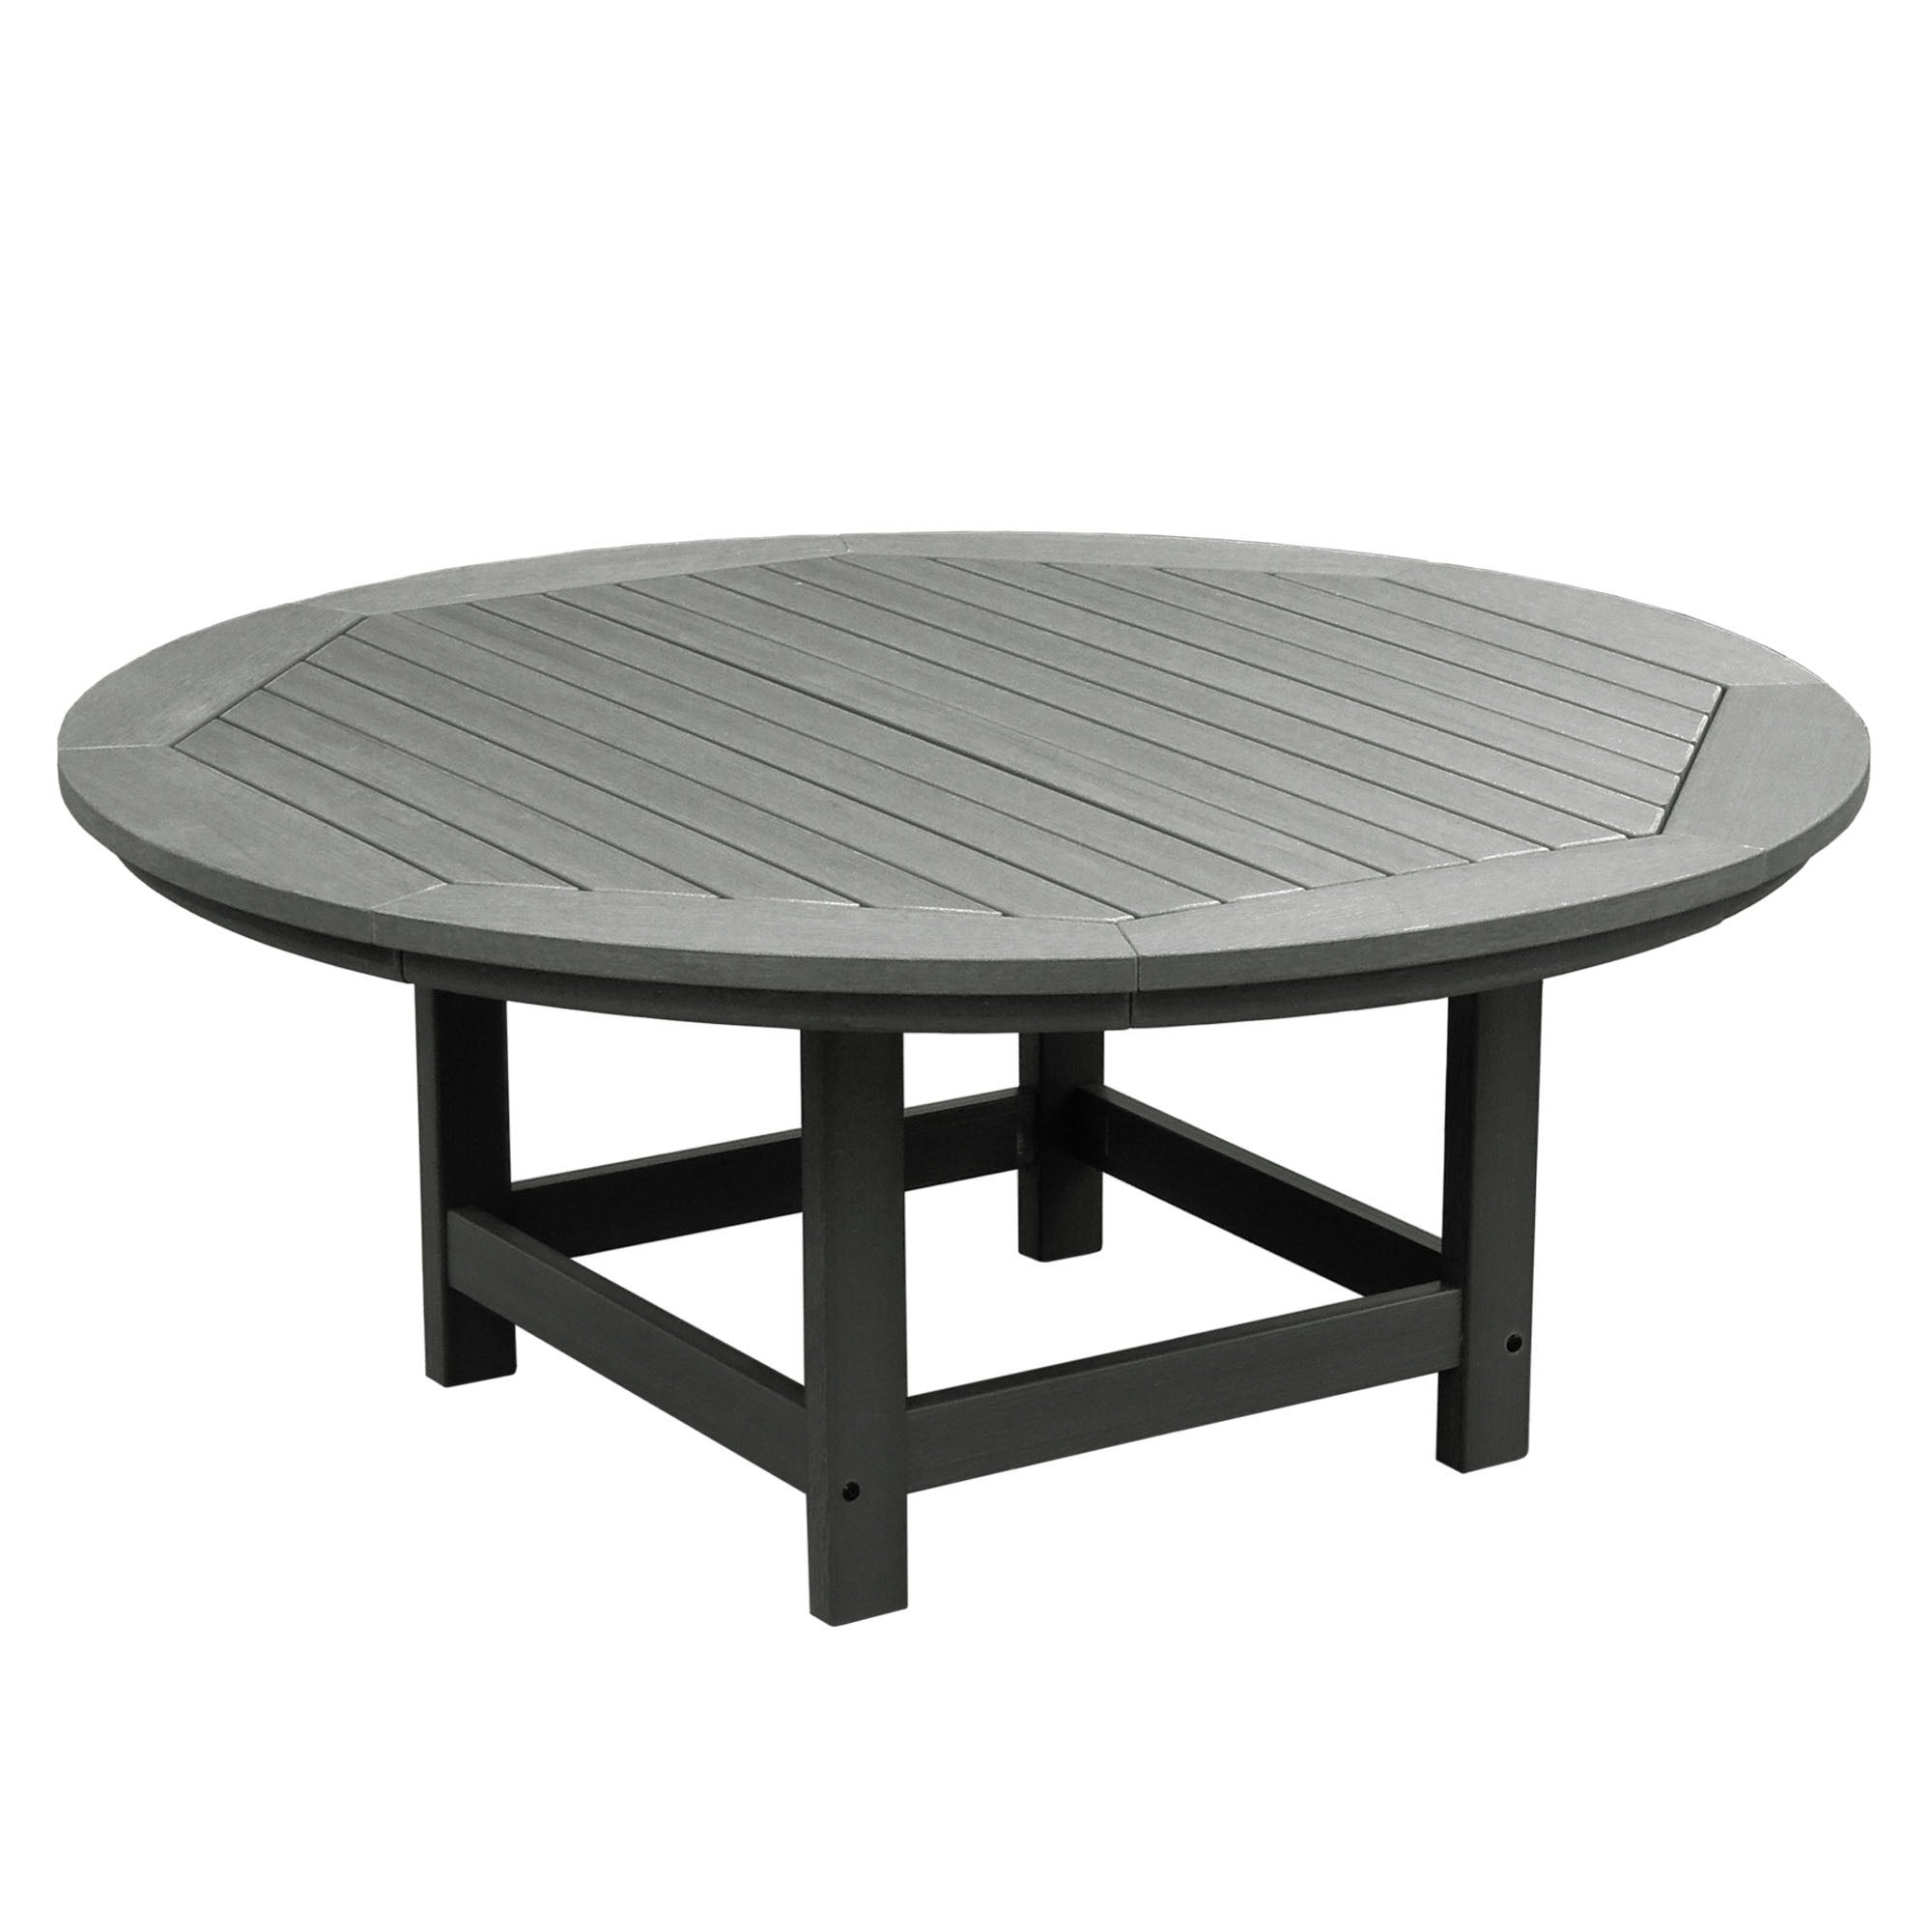 Highwood Eco Friendly Round 48 Conversation Coffee Table Free Shipping Today 12872868